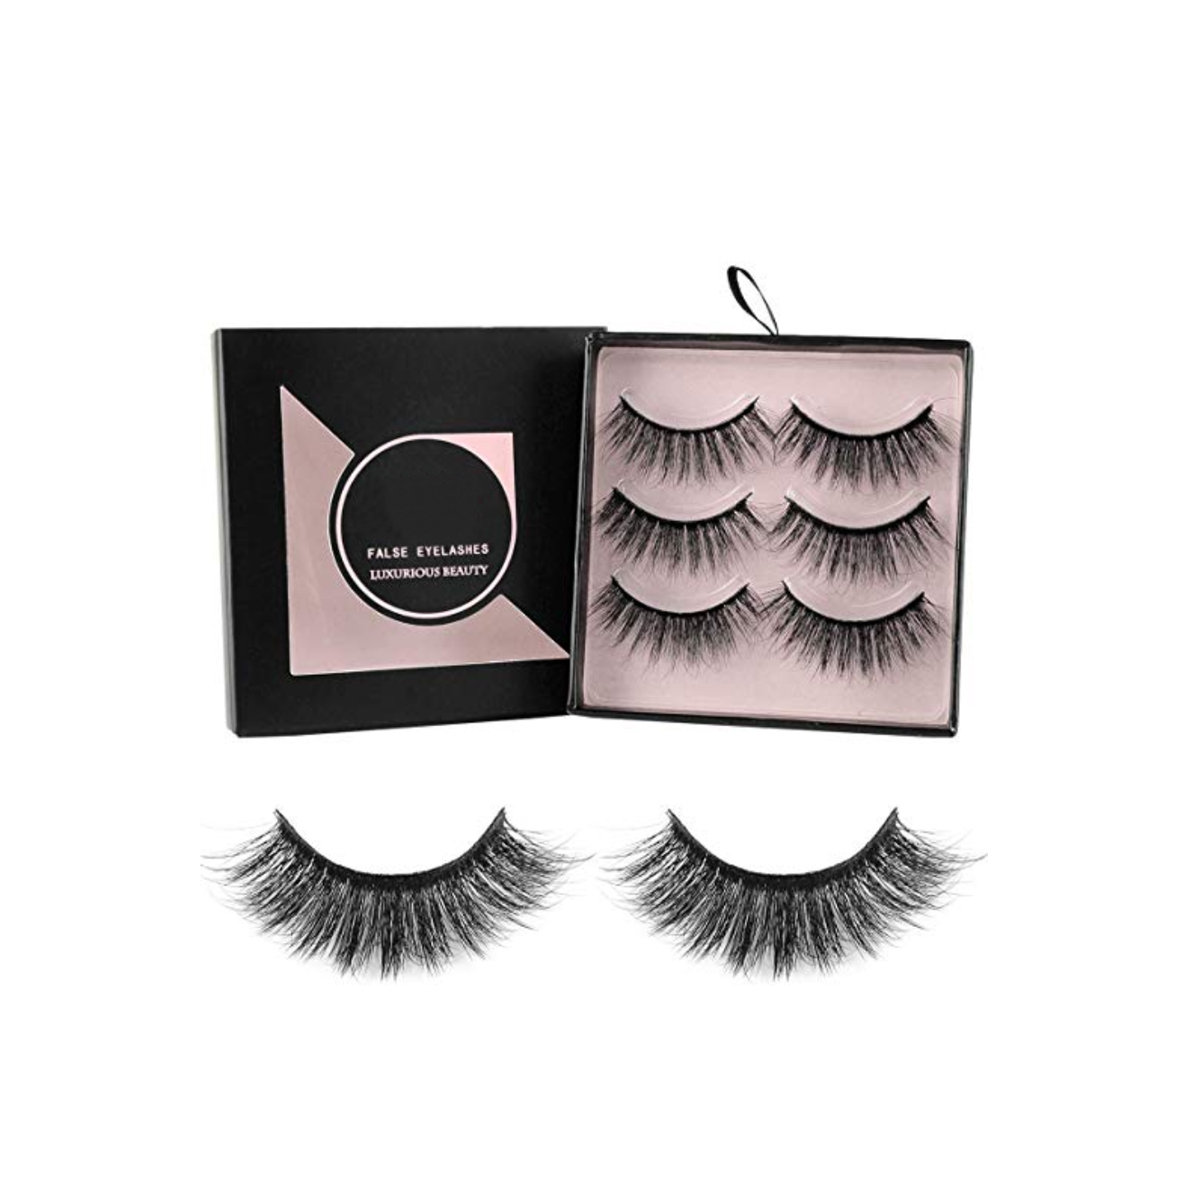 Know U Cosmetics False Eyelashes 202107